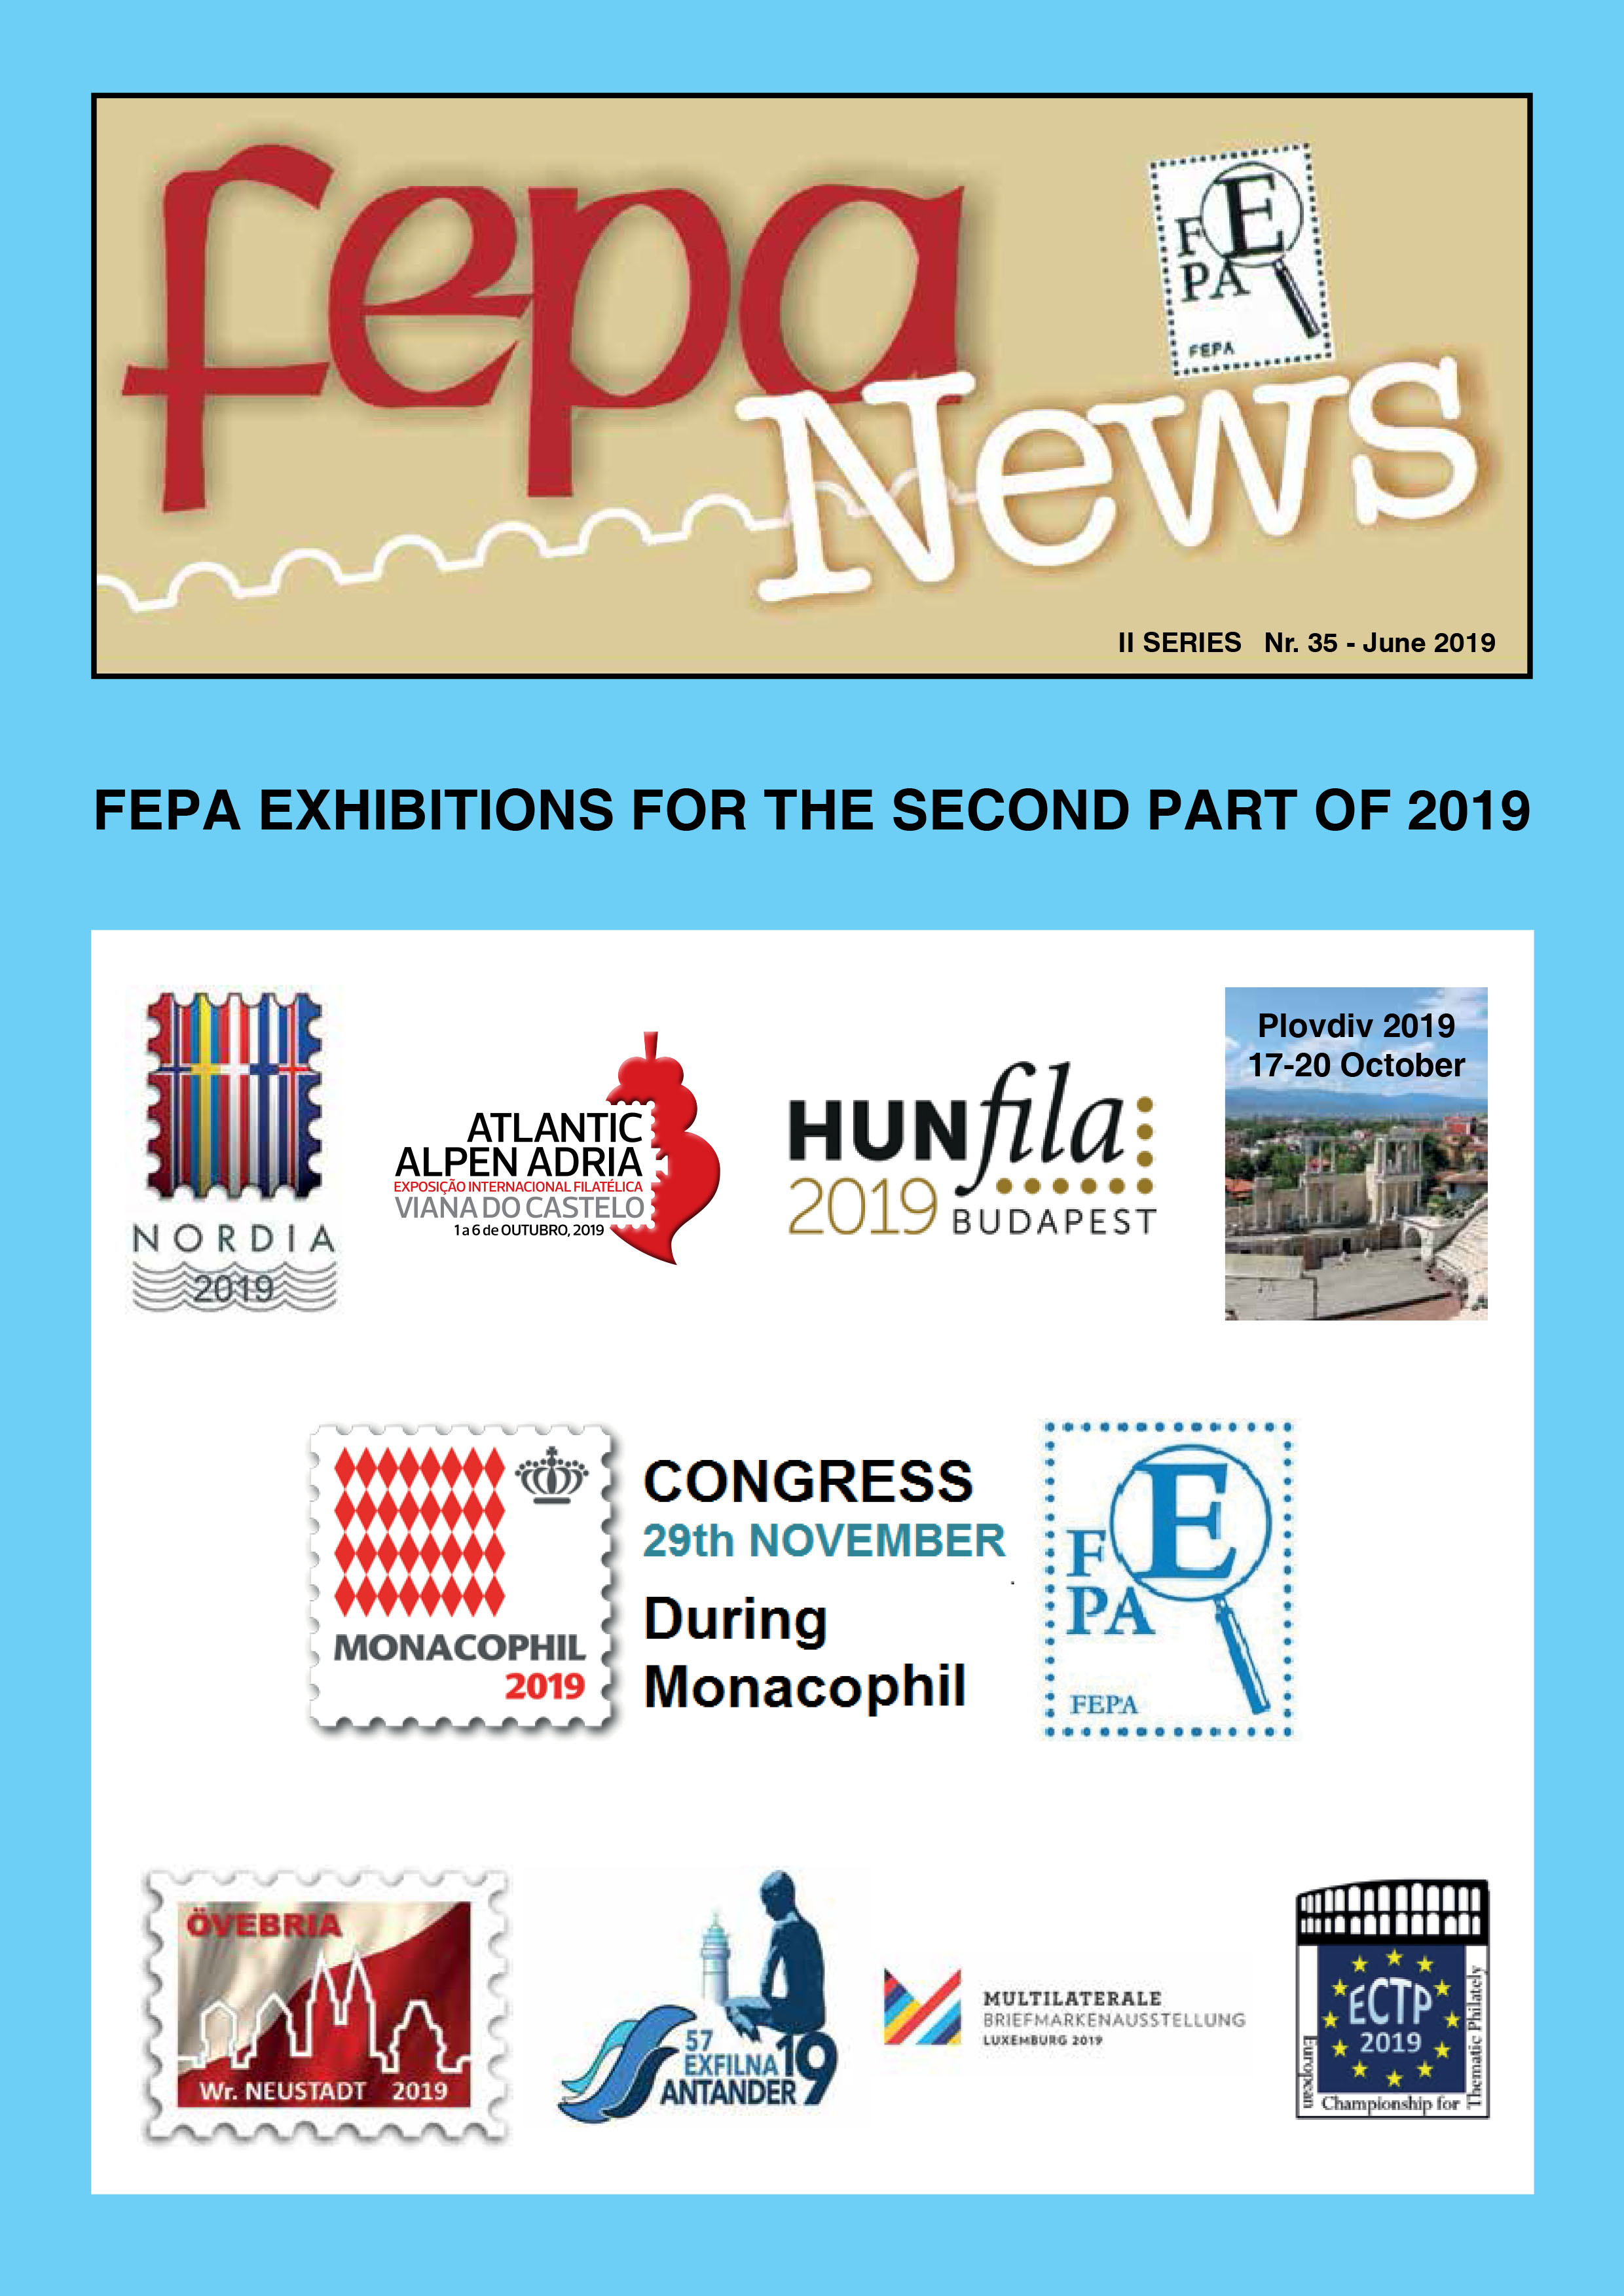 New issue of the journal FEPA NEWS II Series No. 35 � June 2019